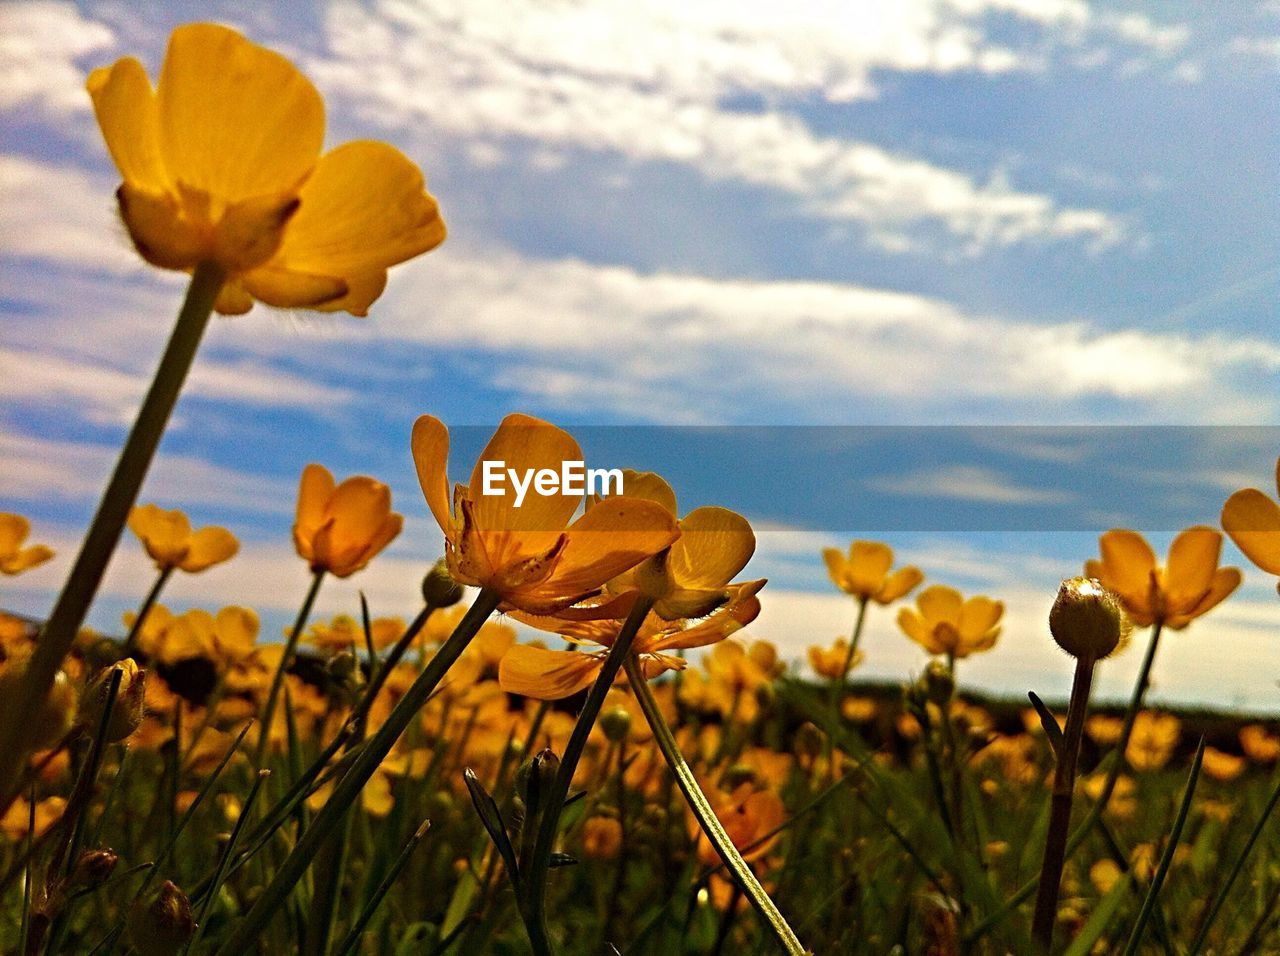 Yellow flowers blooming on field against sky